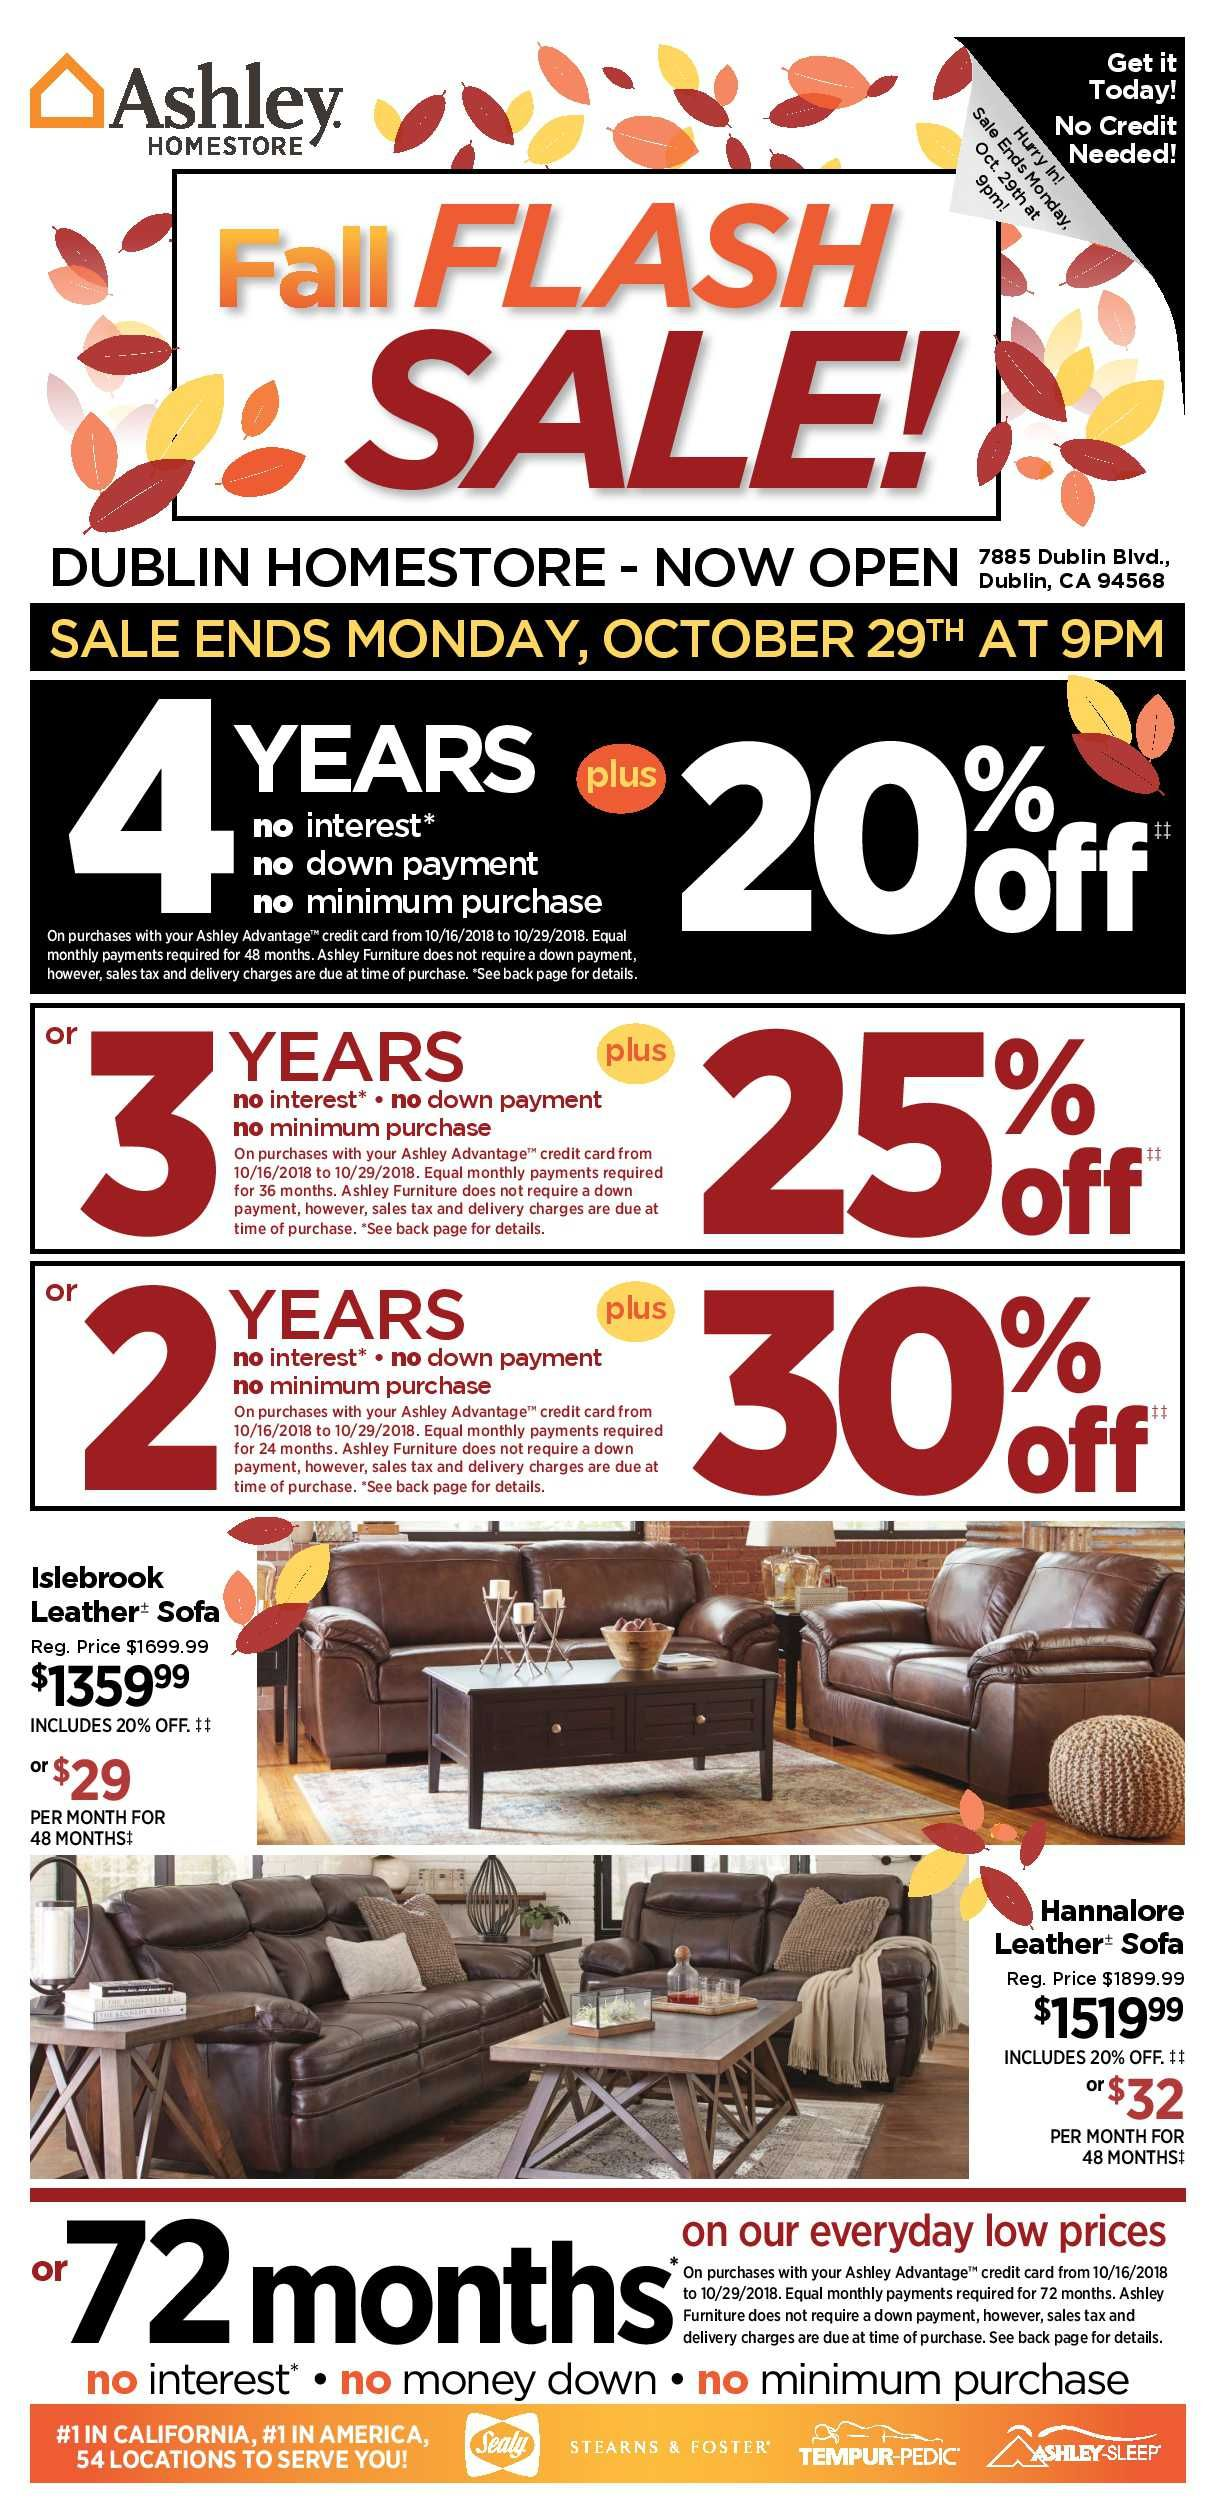 Ashley Furniture Weekly Deals Flyer January 15 21 2019 Weeklyad123 Com Weekly Ad Circular Grocery Stores Ashley Furniture Sale Ashley Furniture At Home Store